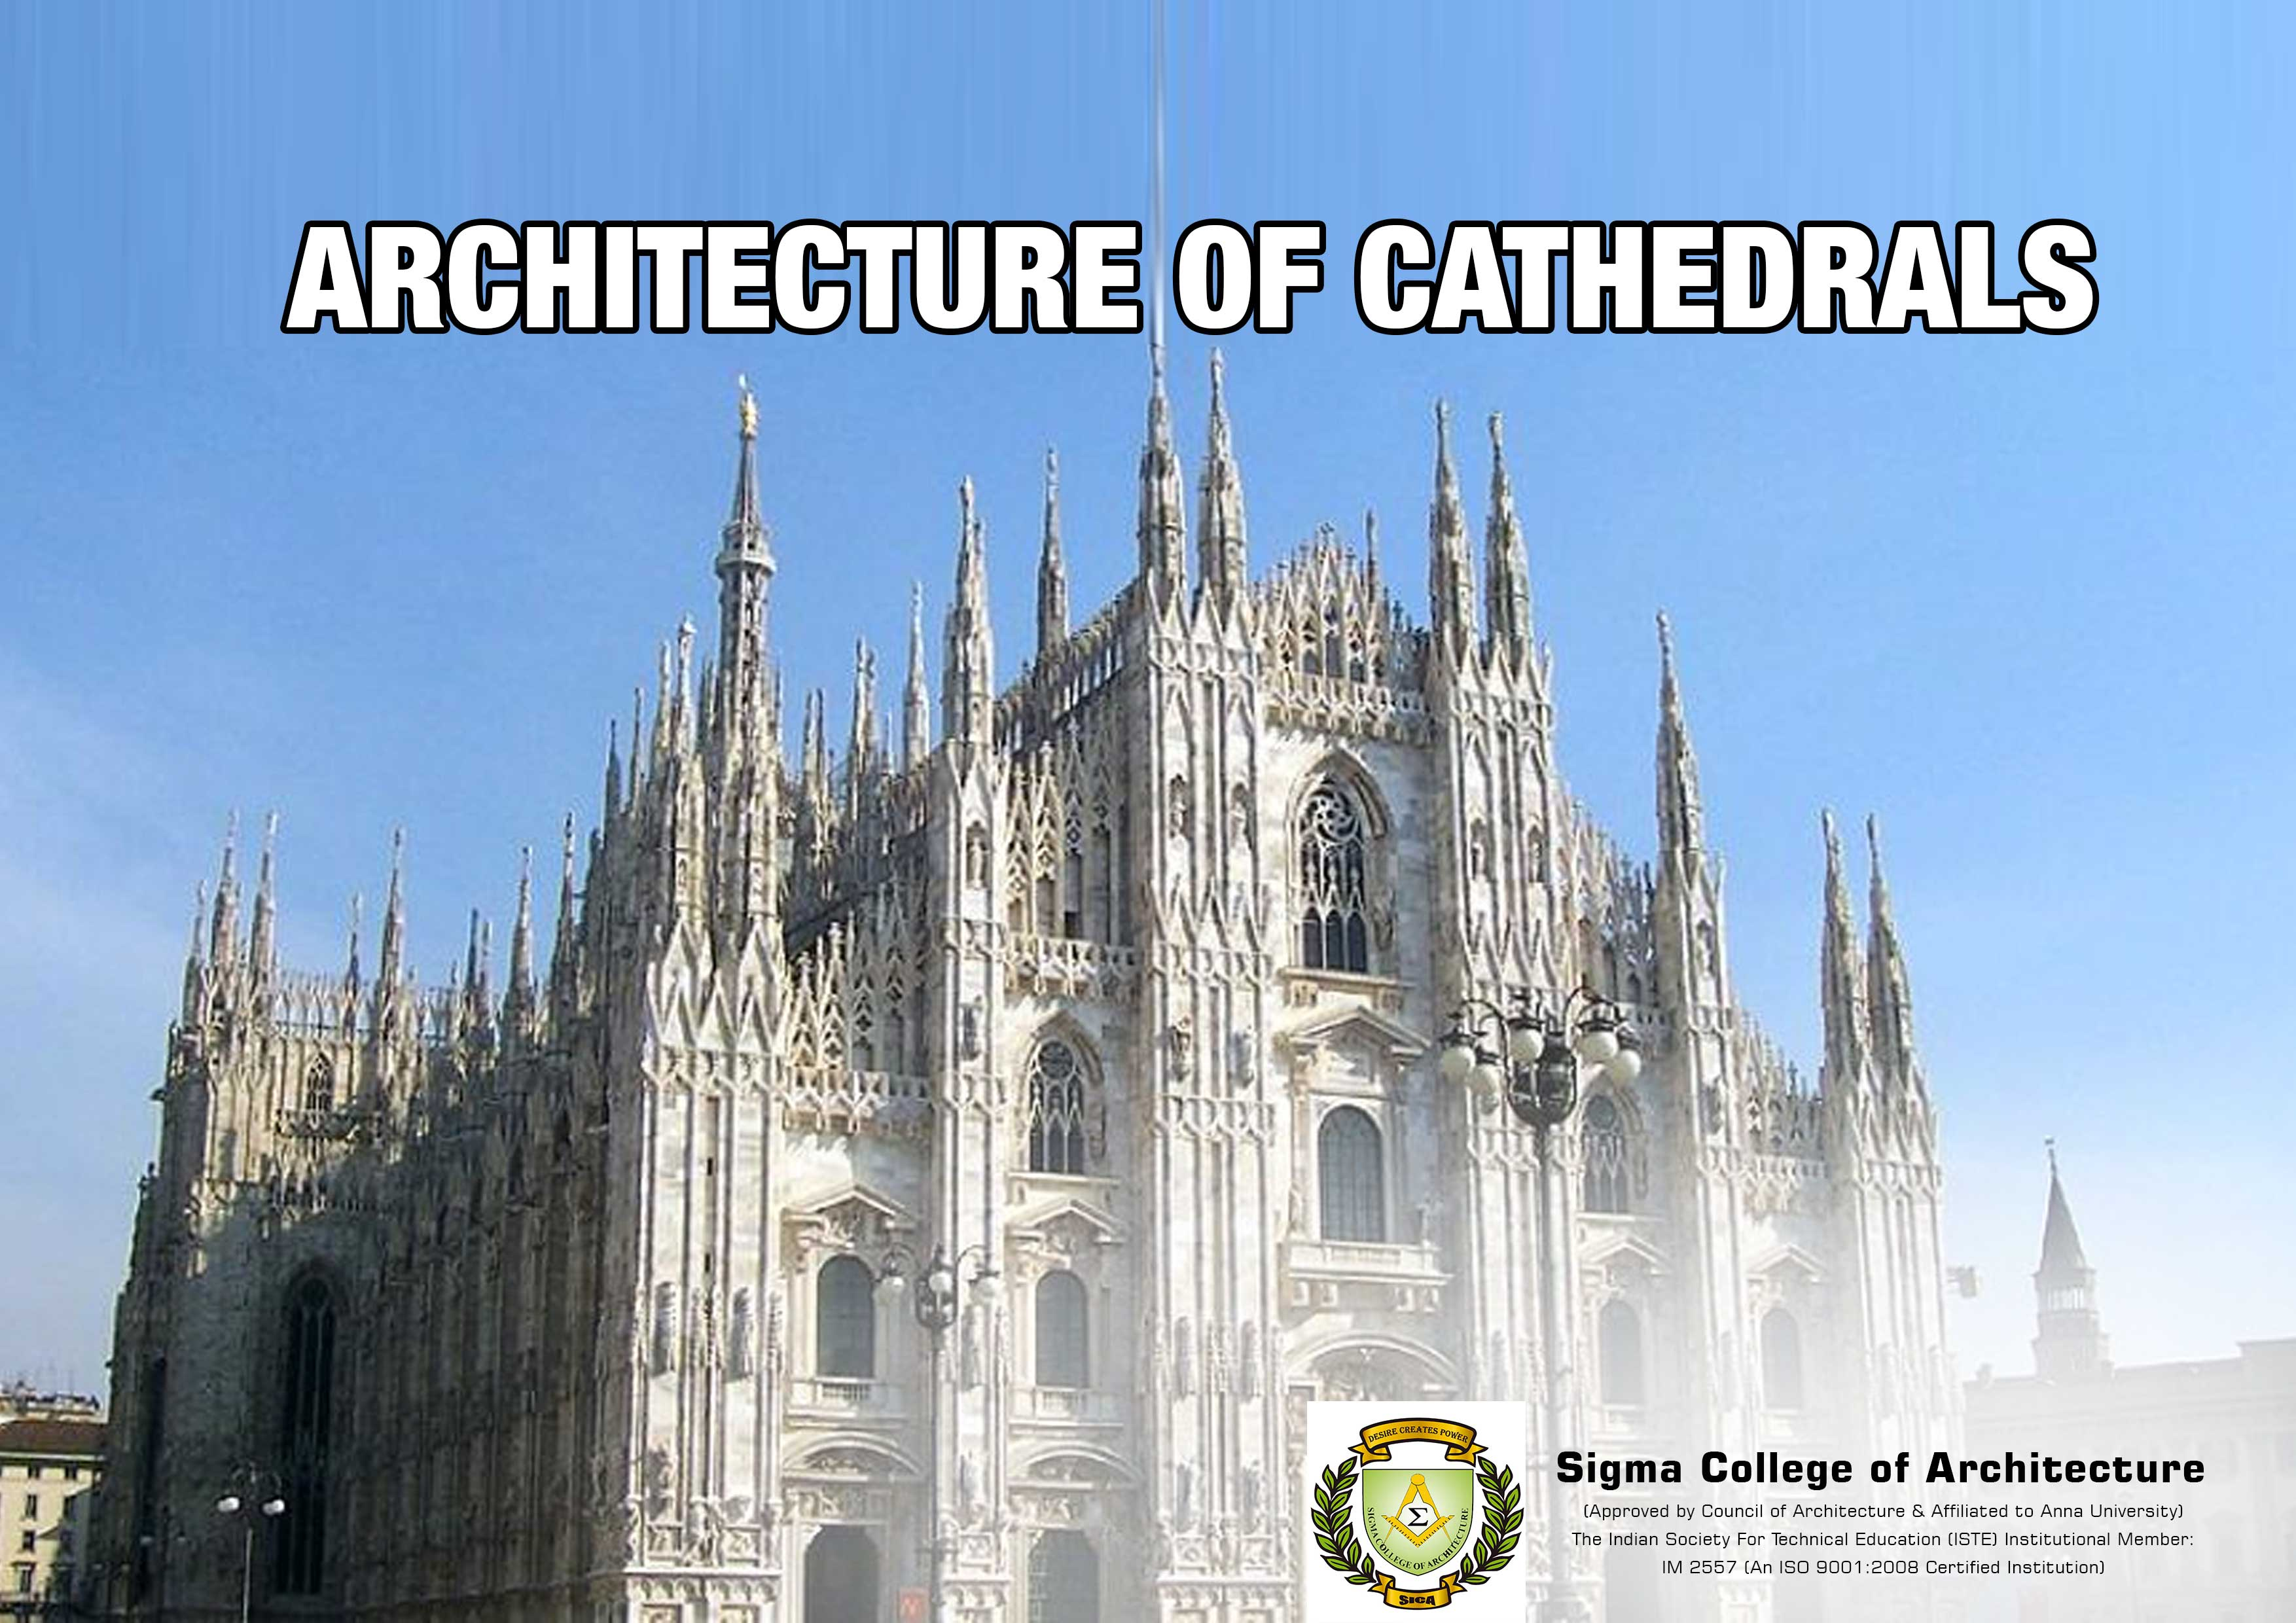 Architecture of Cathedrals